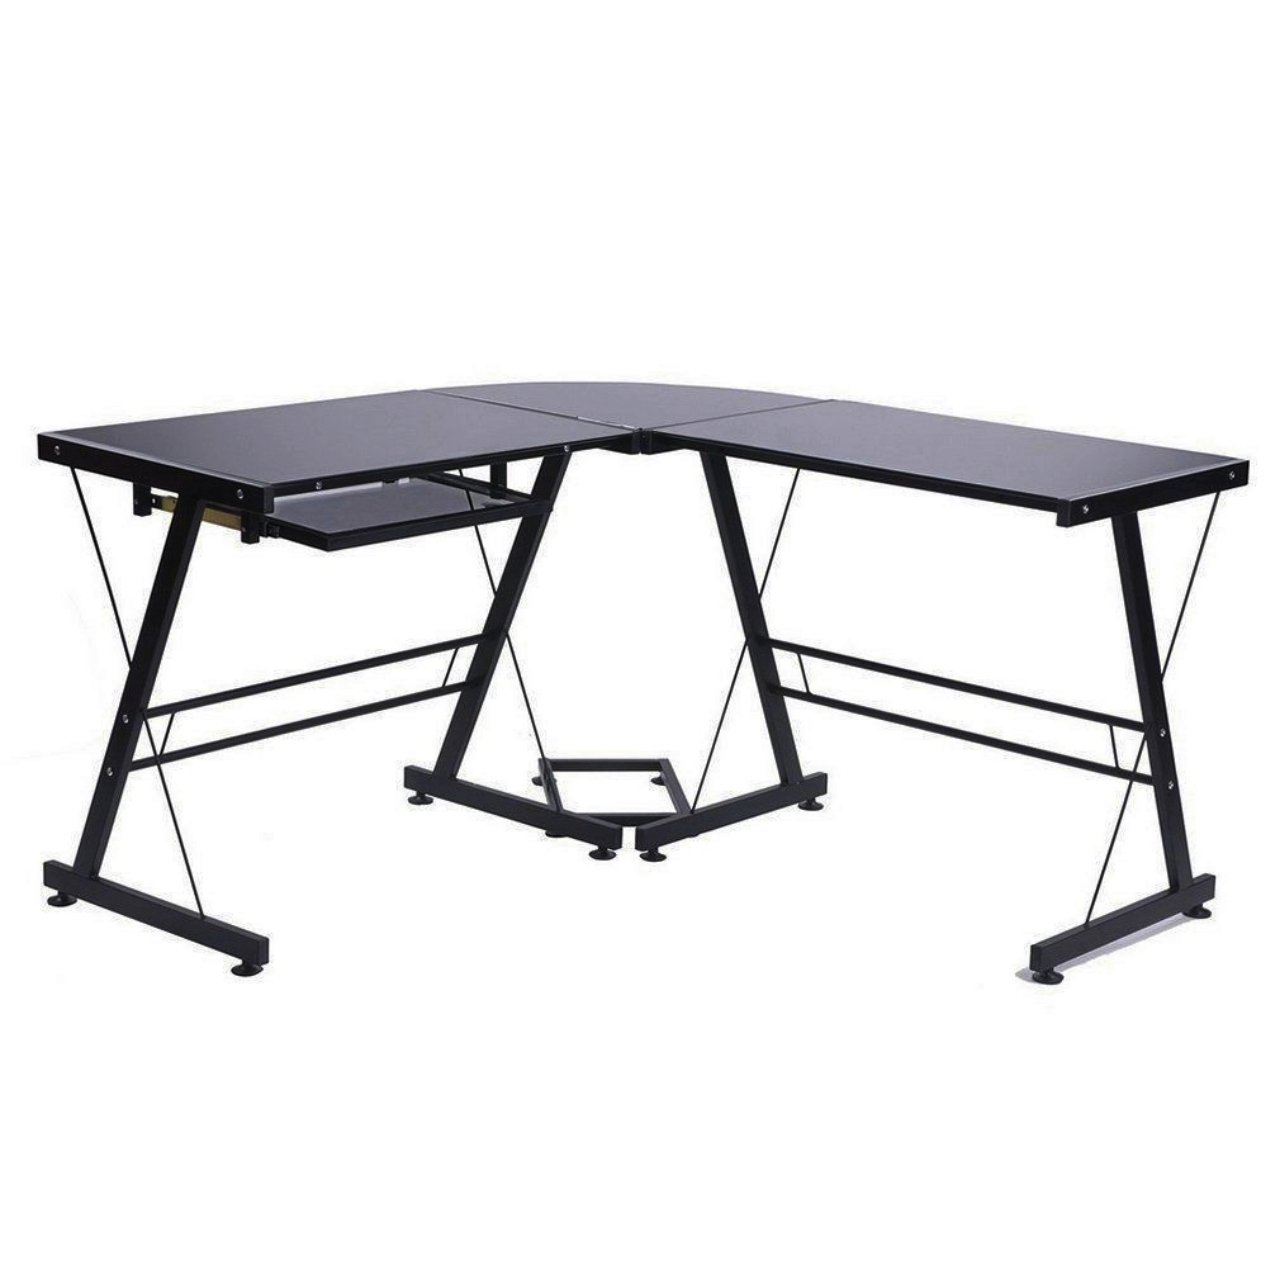 New Solid Stalinite Glass Top Computer Corner Desk PC Laptop Workstation Table Home Office Furniture/ Black #1044